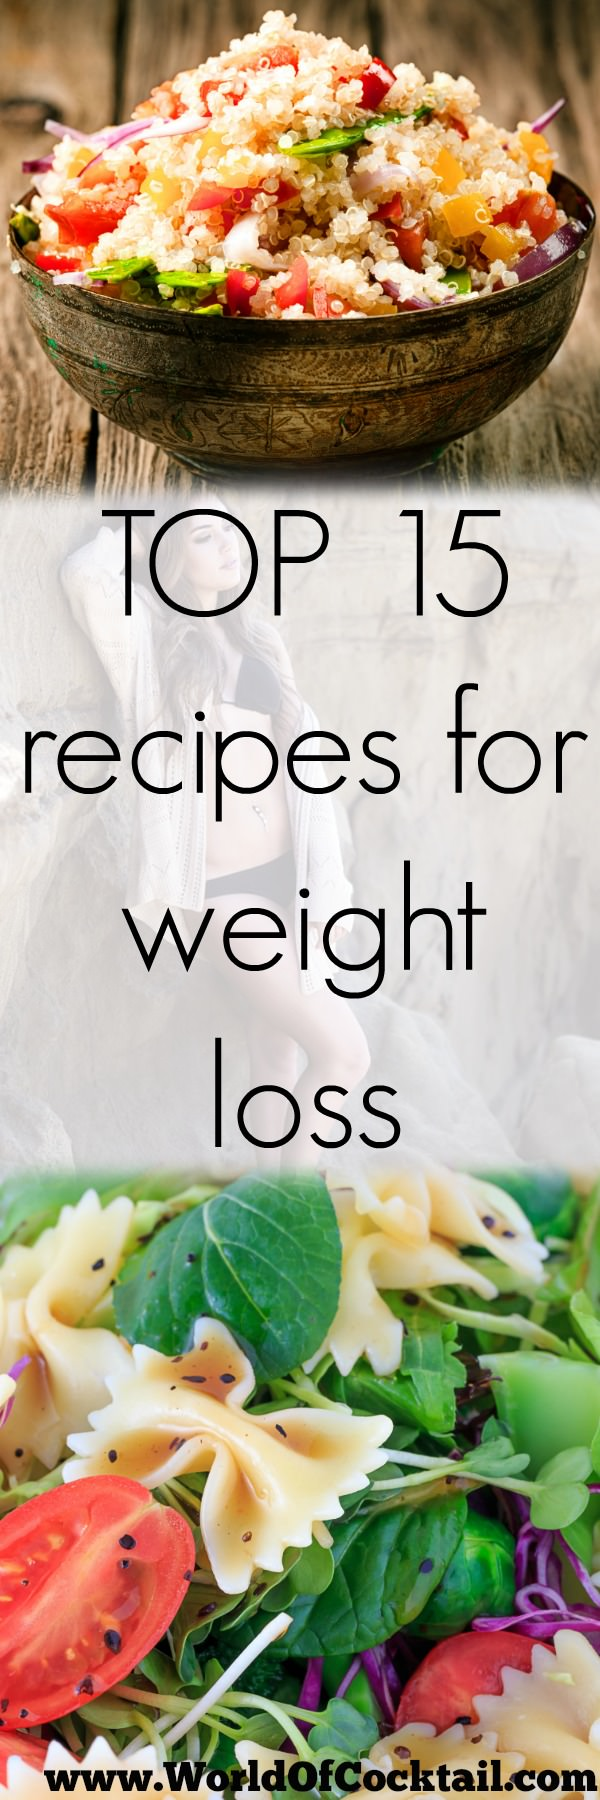 Not just the exercise, correct diet plays a prominent role in losing weight and gaining lean shape. For your help, here are the 15 recipes that you can add into your diet!